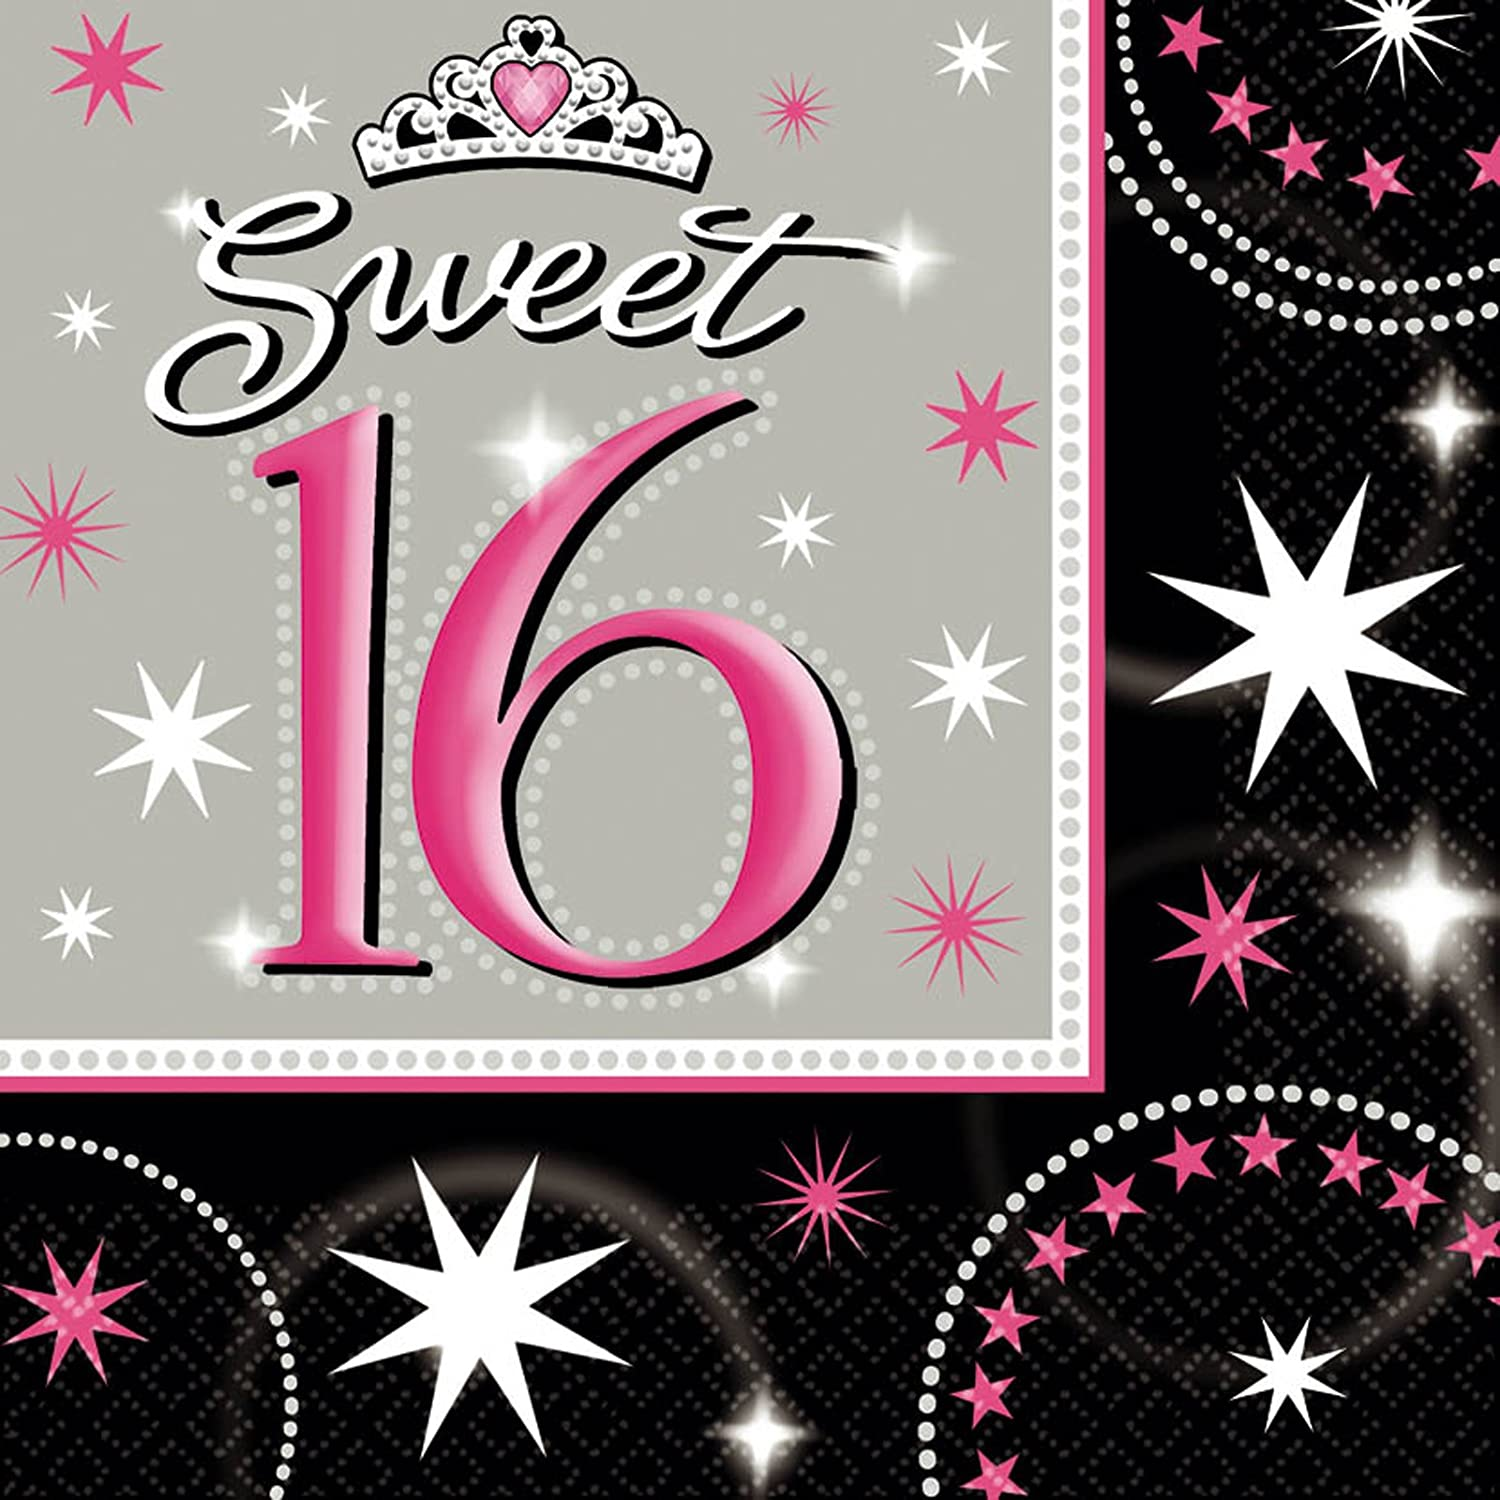 Amscan International Sweet 16 Party Napkins, Pack of 16 519874